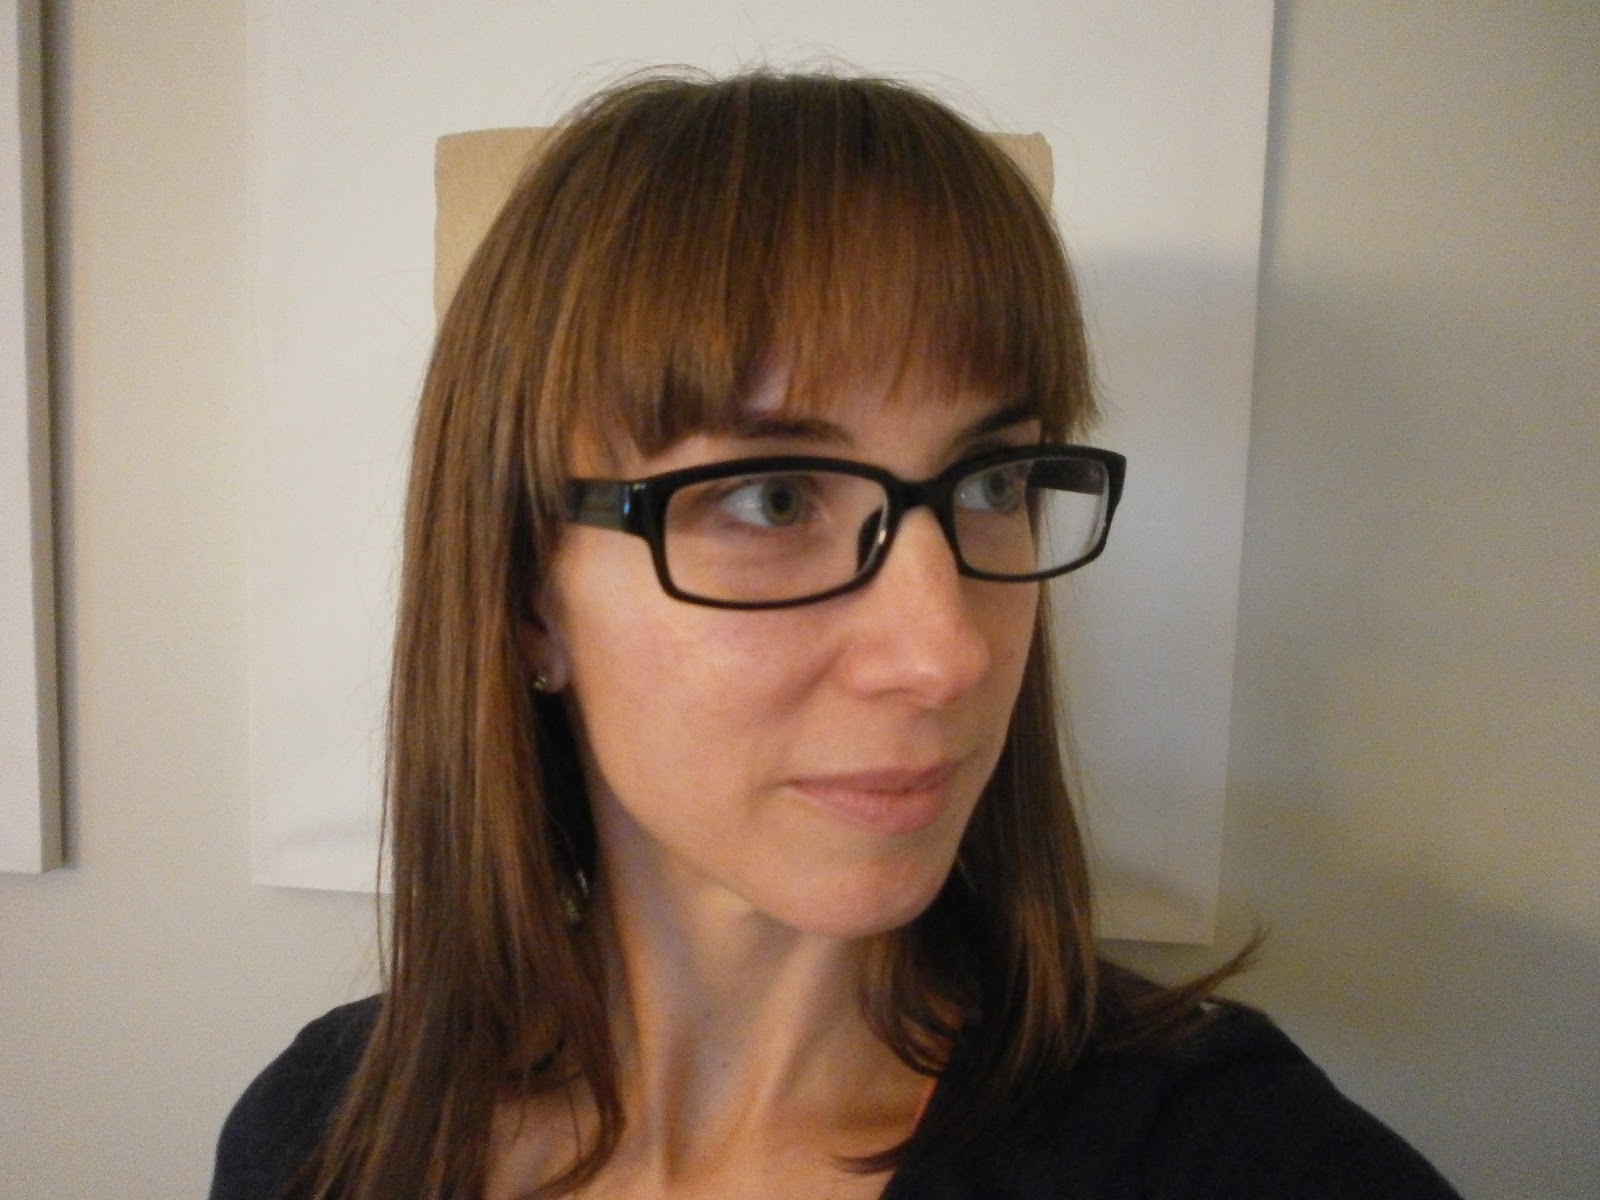 d14890ed66e I knew I wanted new black framed glasses and there was a huge selection!  This is what I ended up selecting…